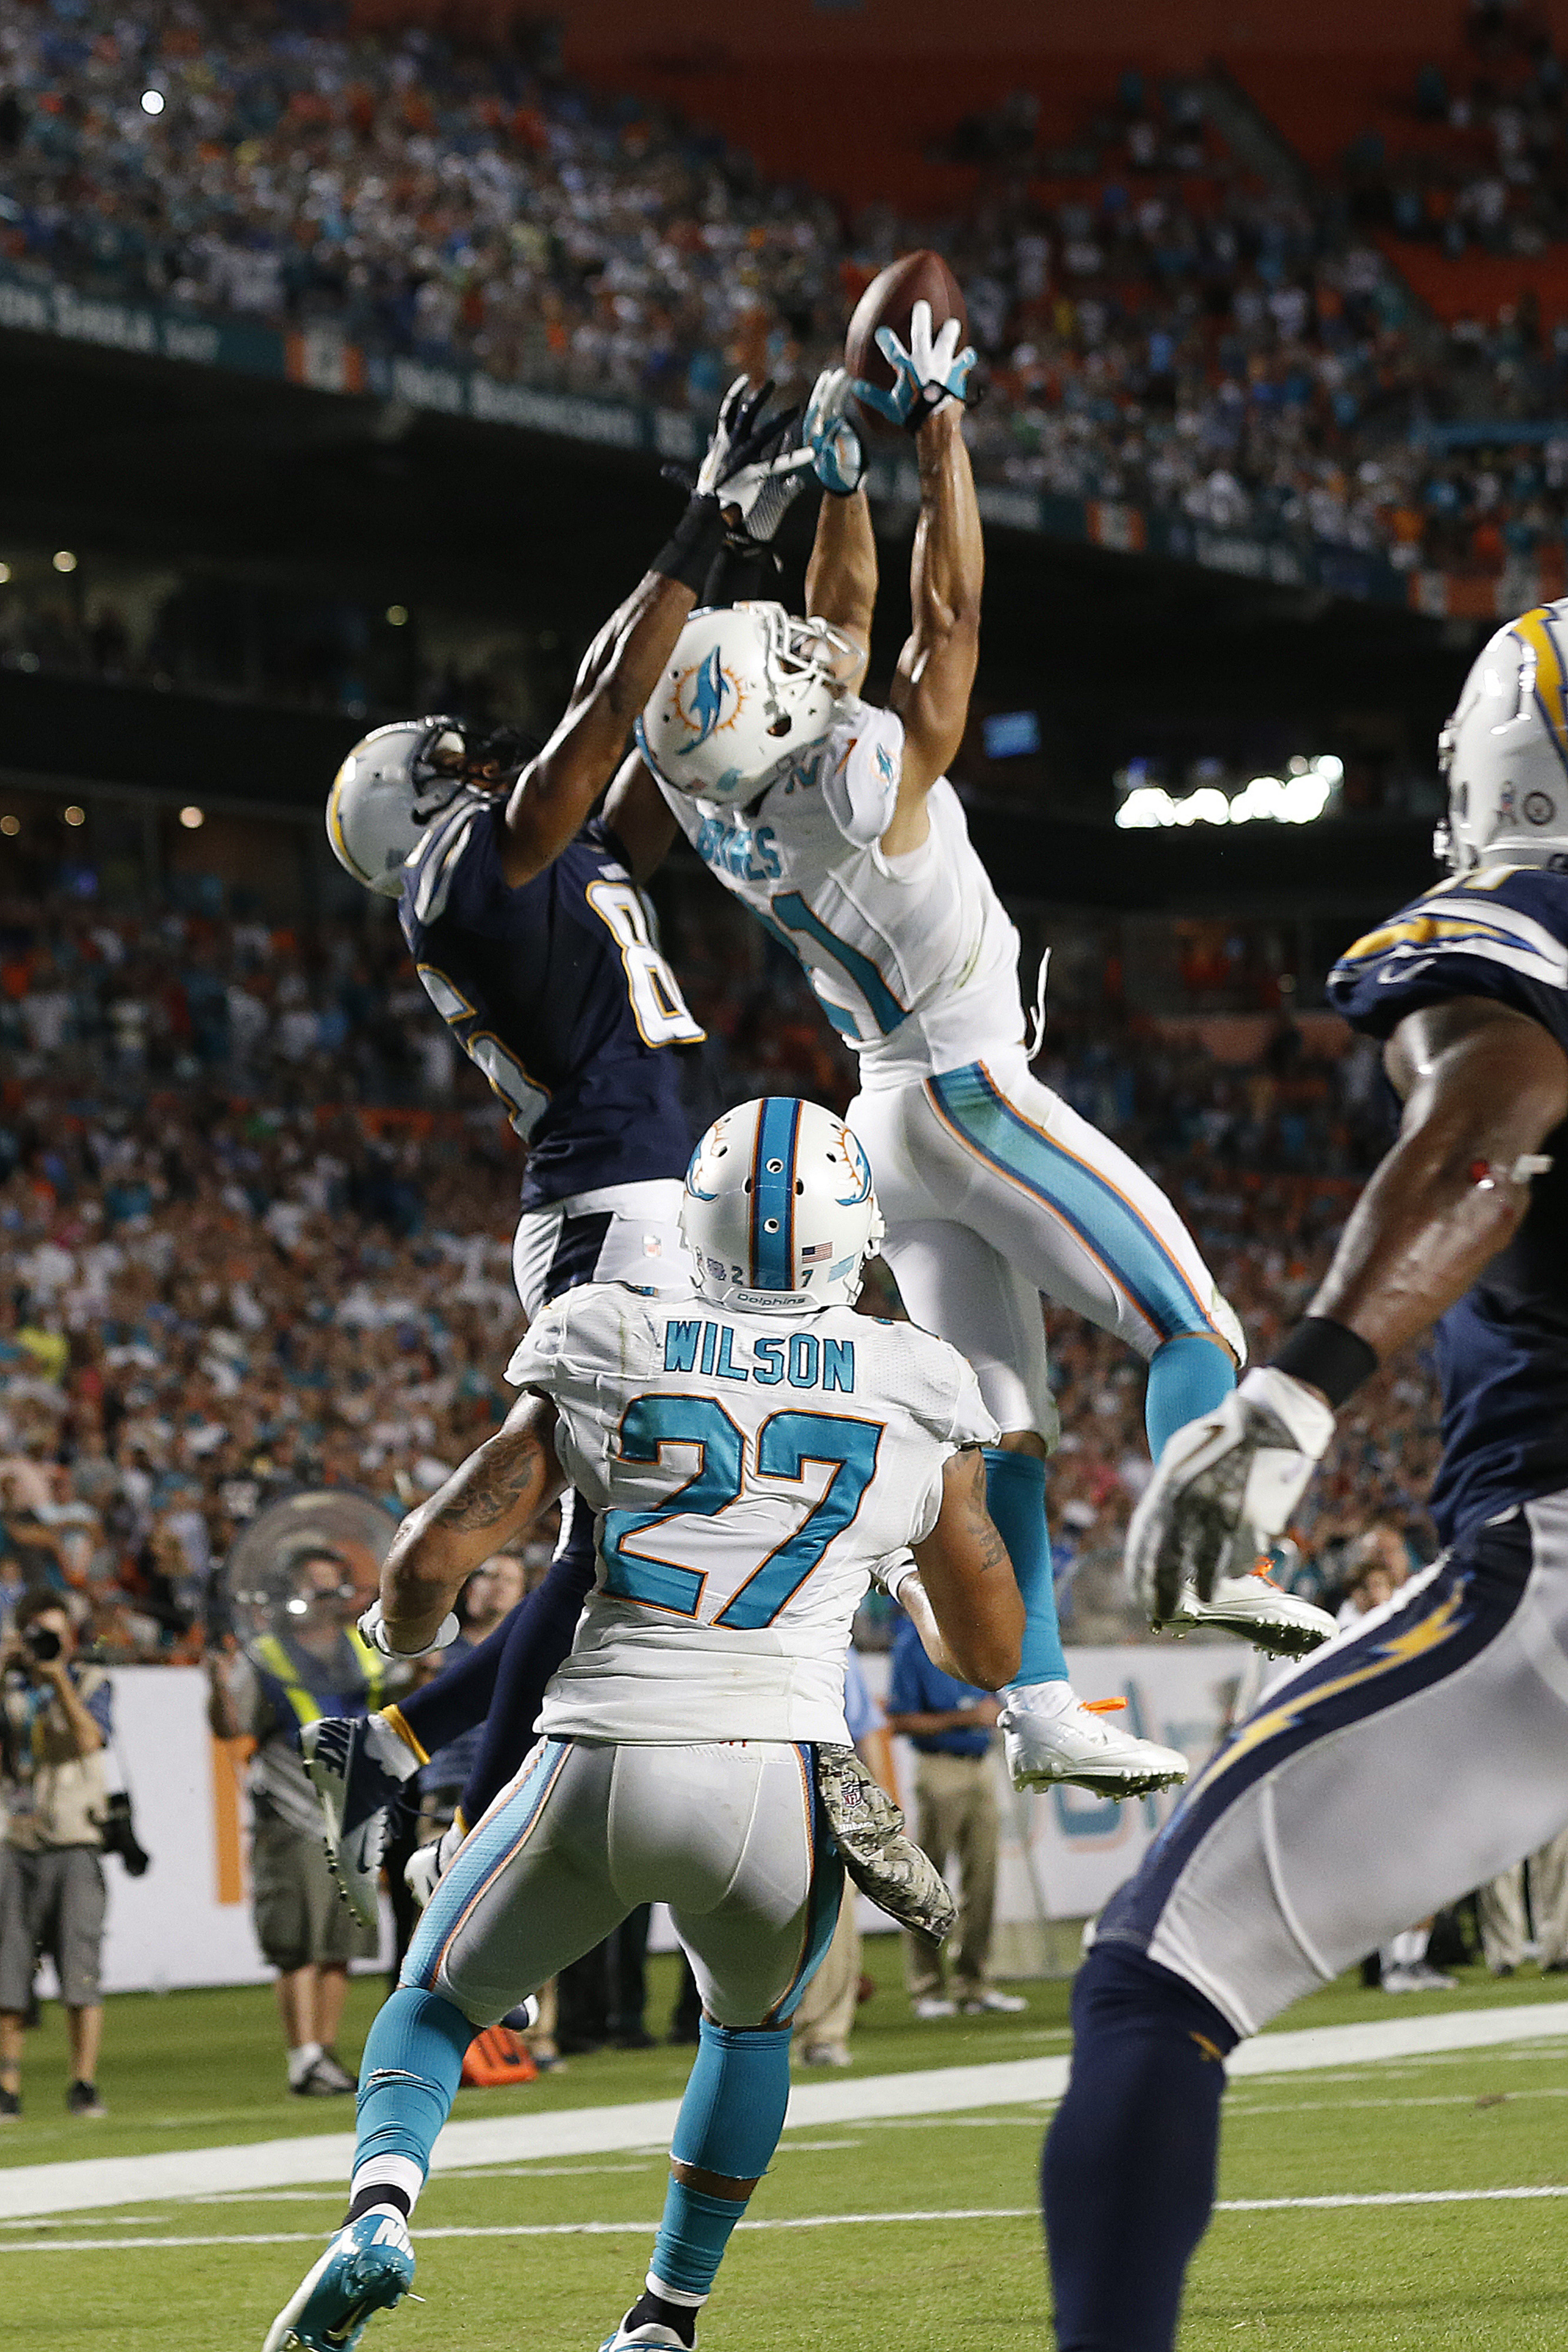 NFL Top 100 Players 2014 Brent Grimes at 95 The Phinsider